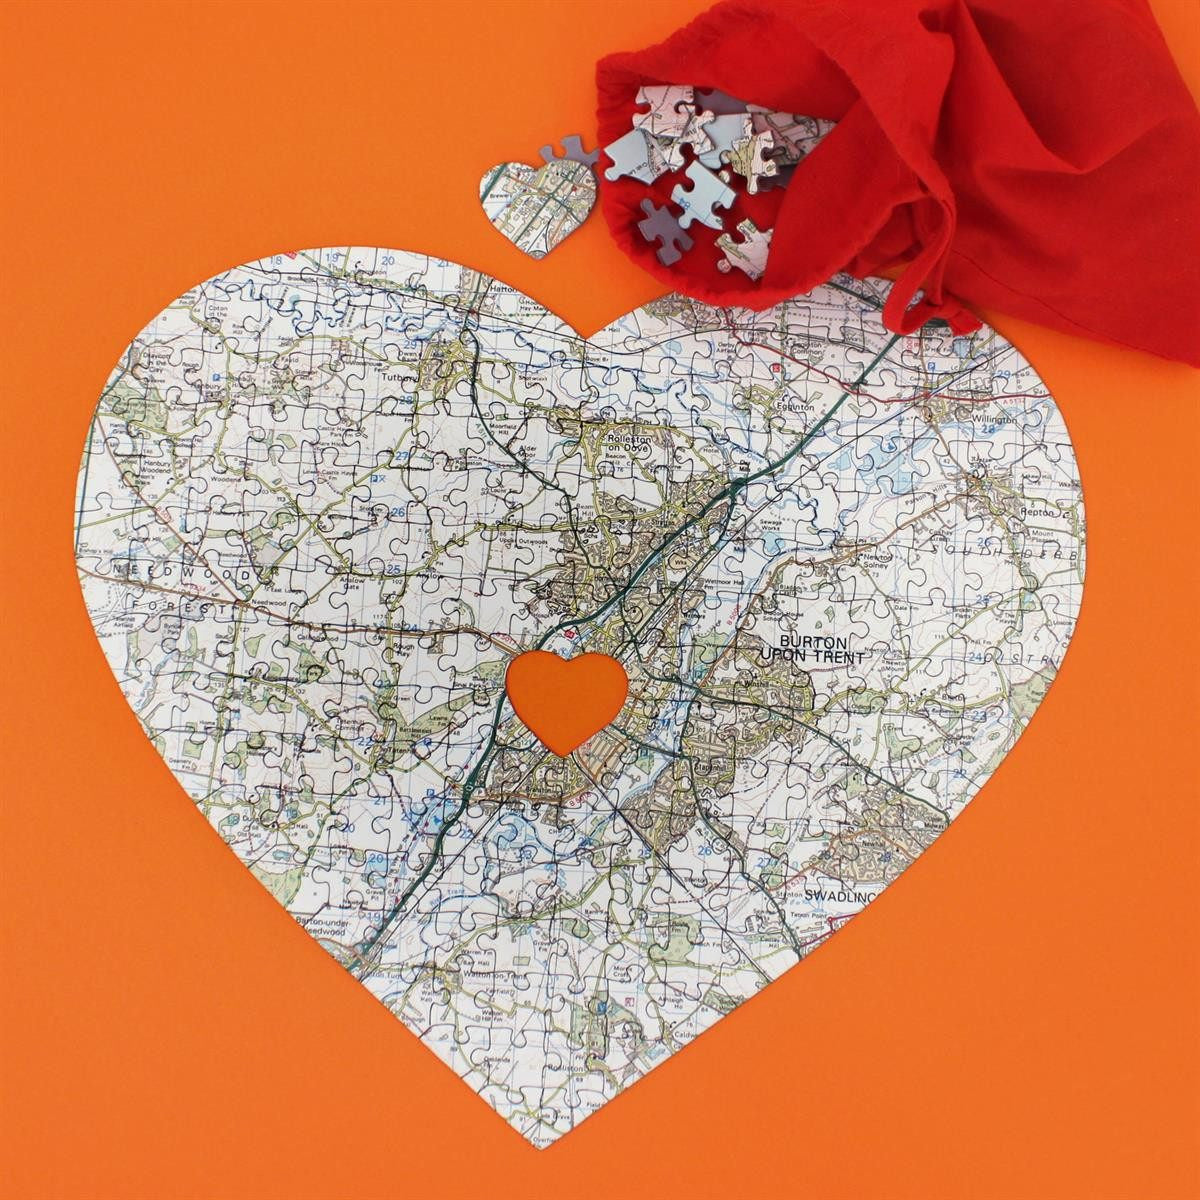 #7! Personalised Heart-Shaped Map Jigsaw Puzzle